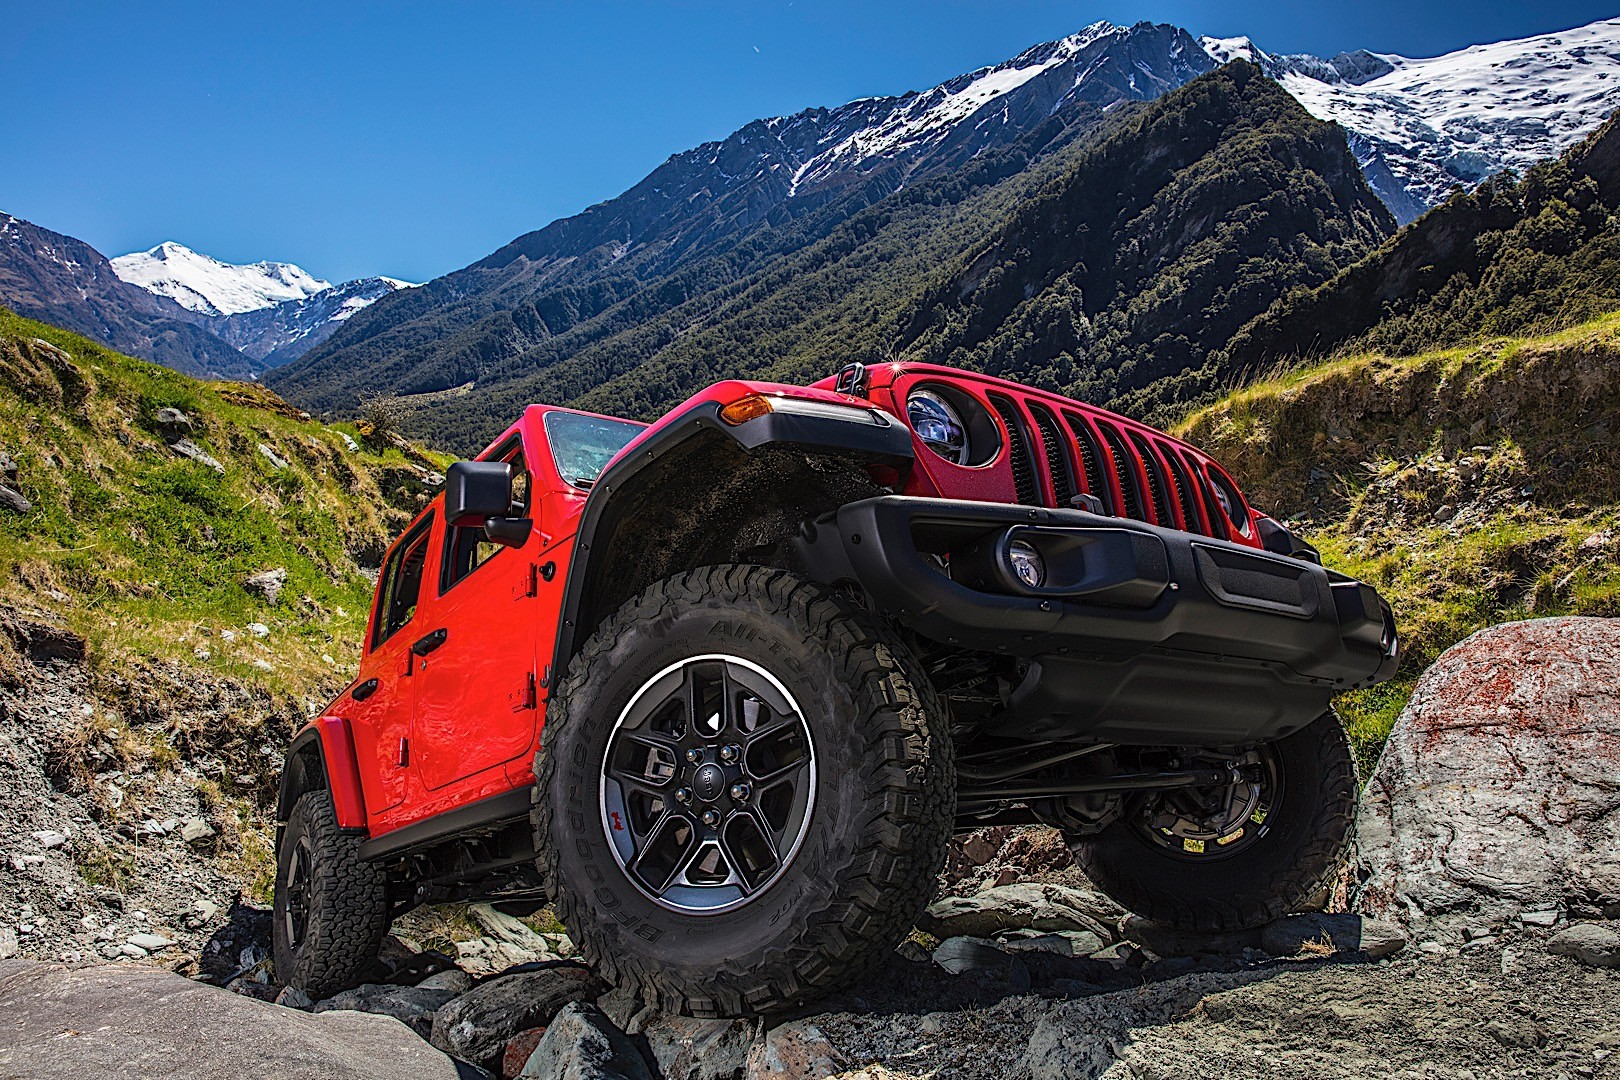 jeep wrangler rubicon unlimited jl accessories 2021 autoevolution uncovered completely present specs